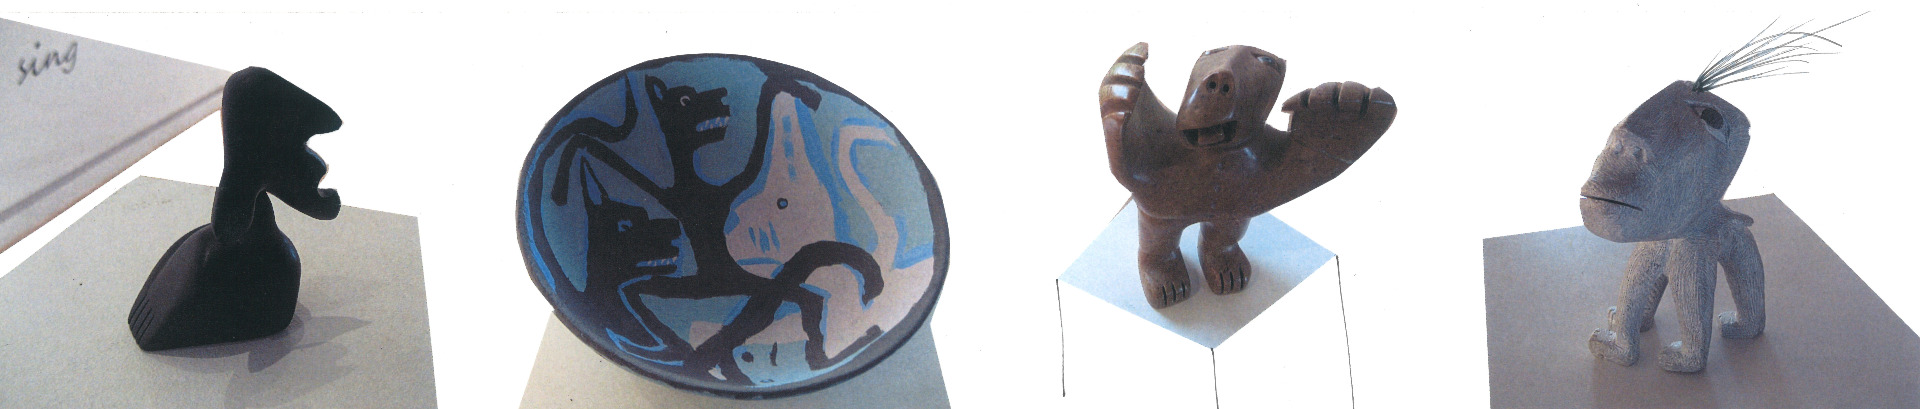 4_sculptures_composite_banner